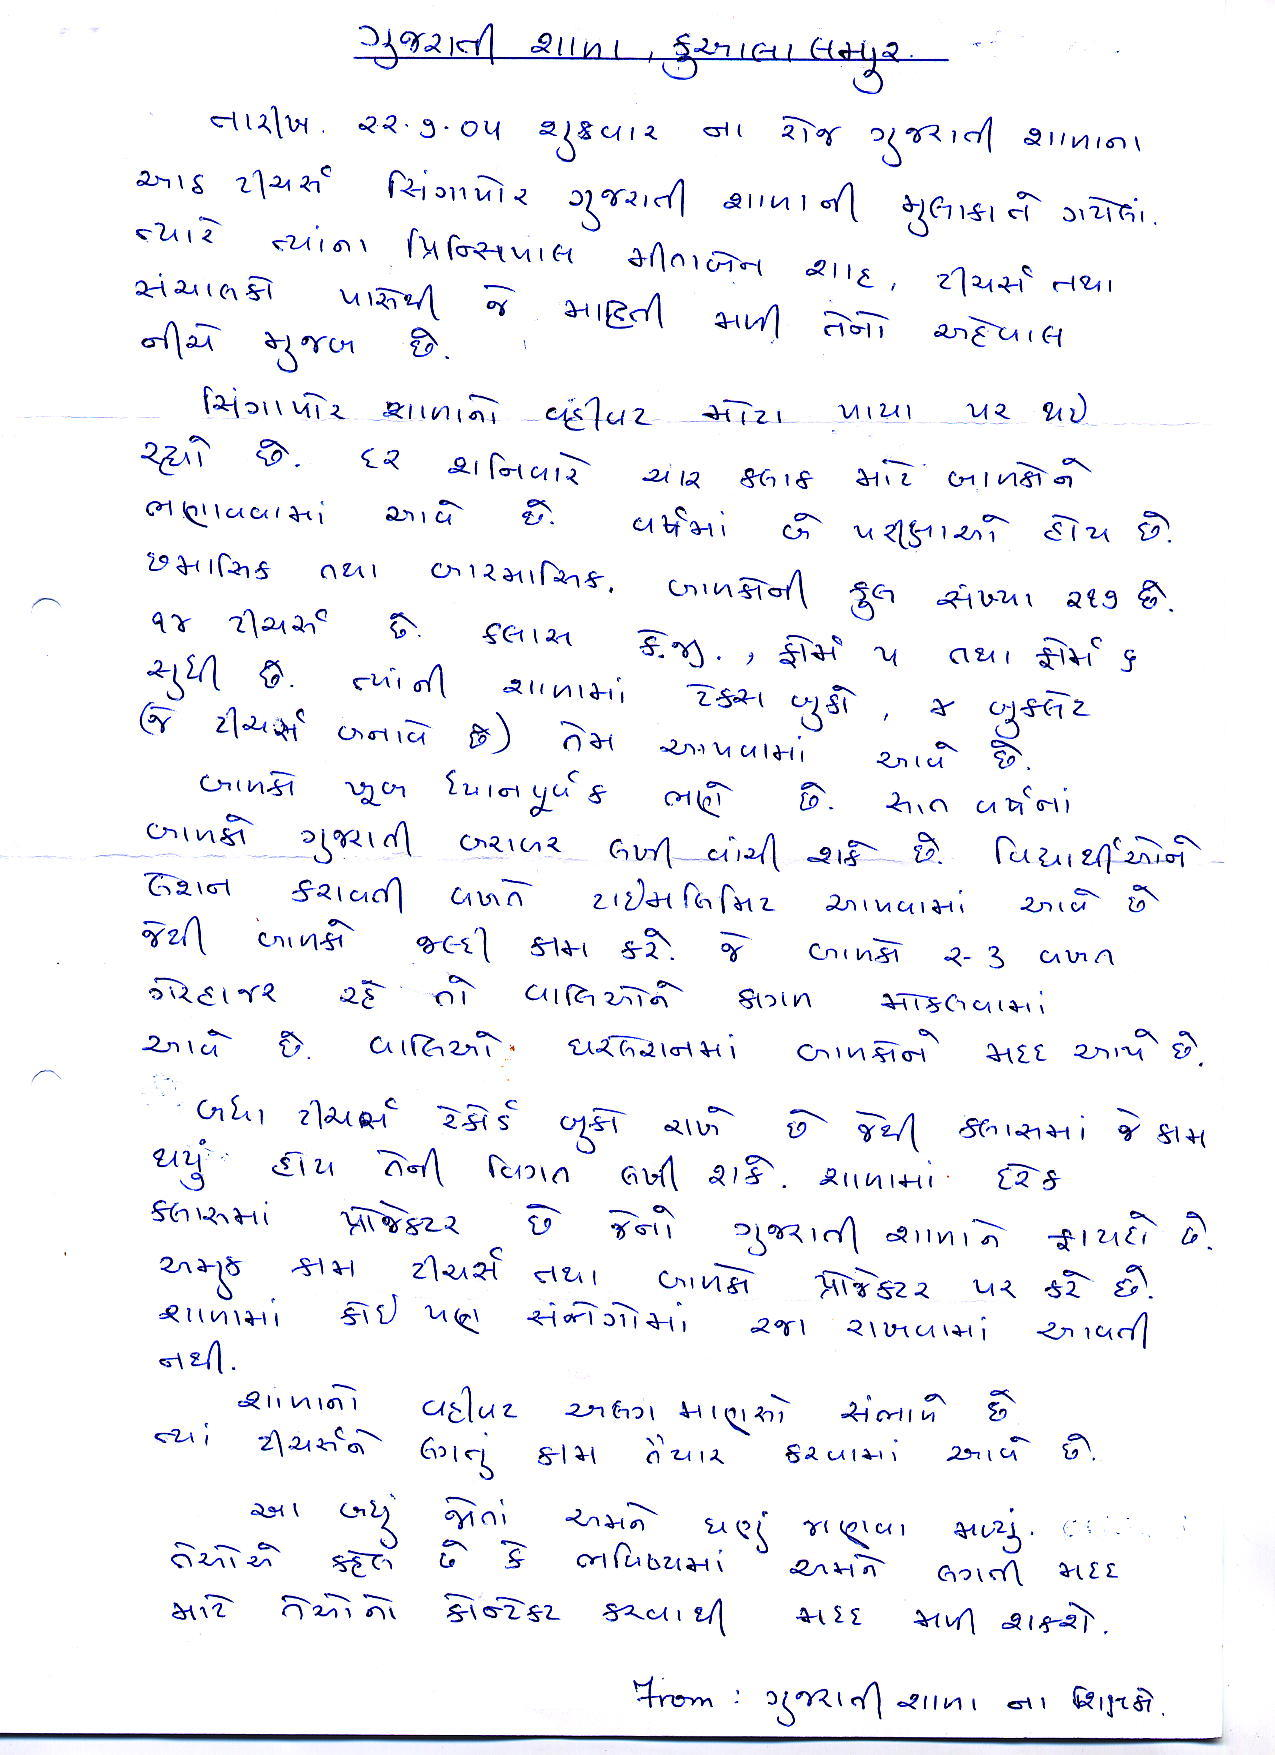 gujarati s of welcome you all all the teachers jointly prepared a summary of their experience and observation made during their trip